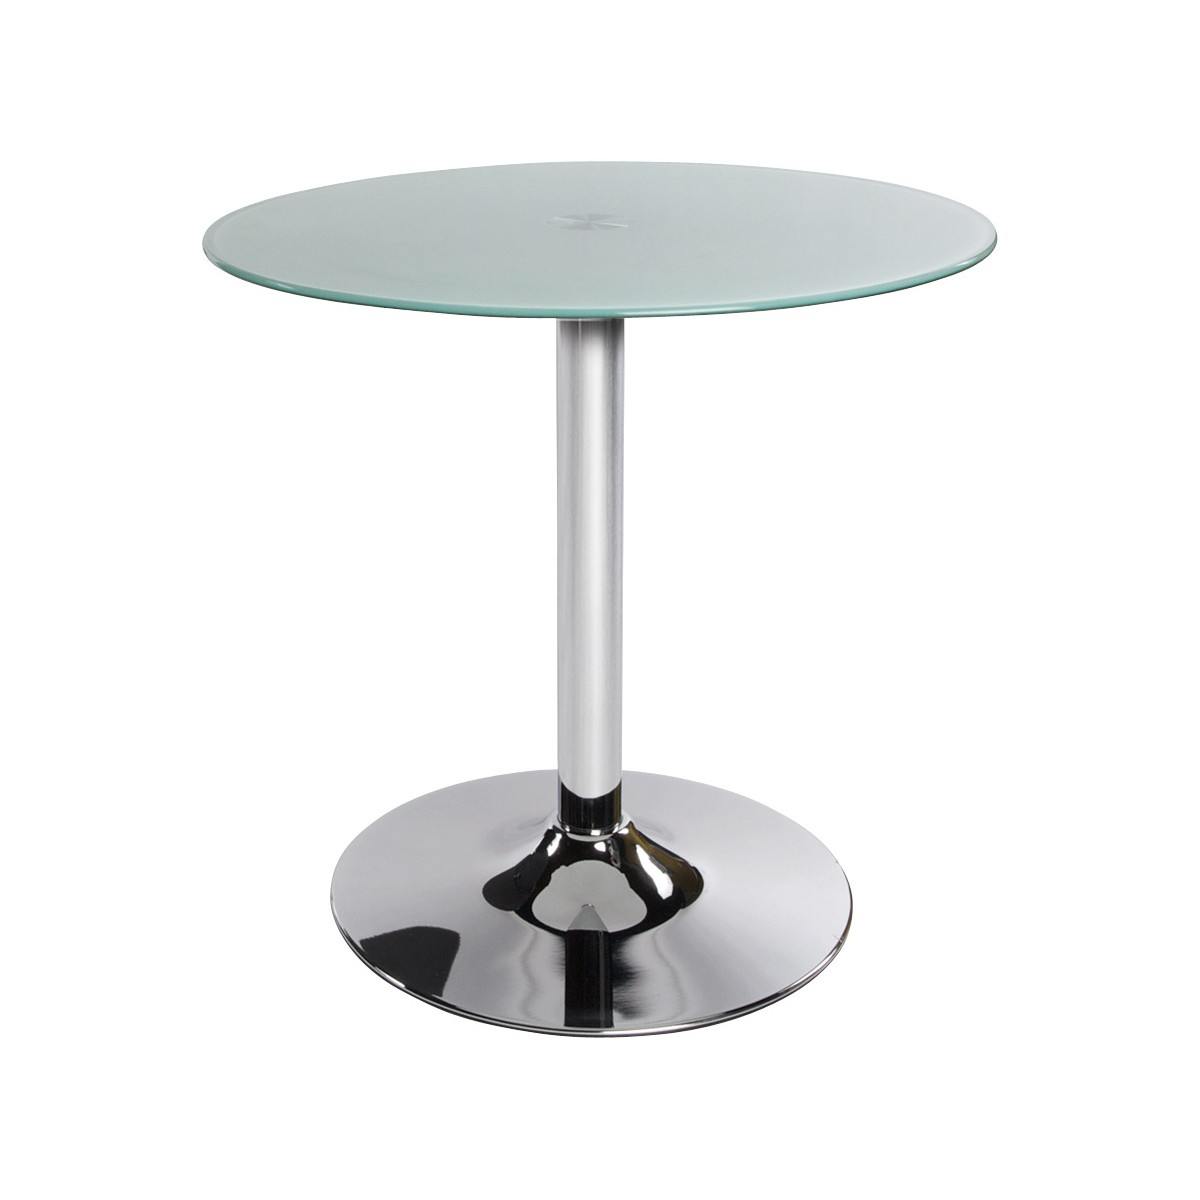 Table ronde vinyl en m tal et verre tremp blanc fran ais french - Table ronde verre trempe ...